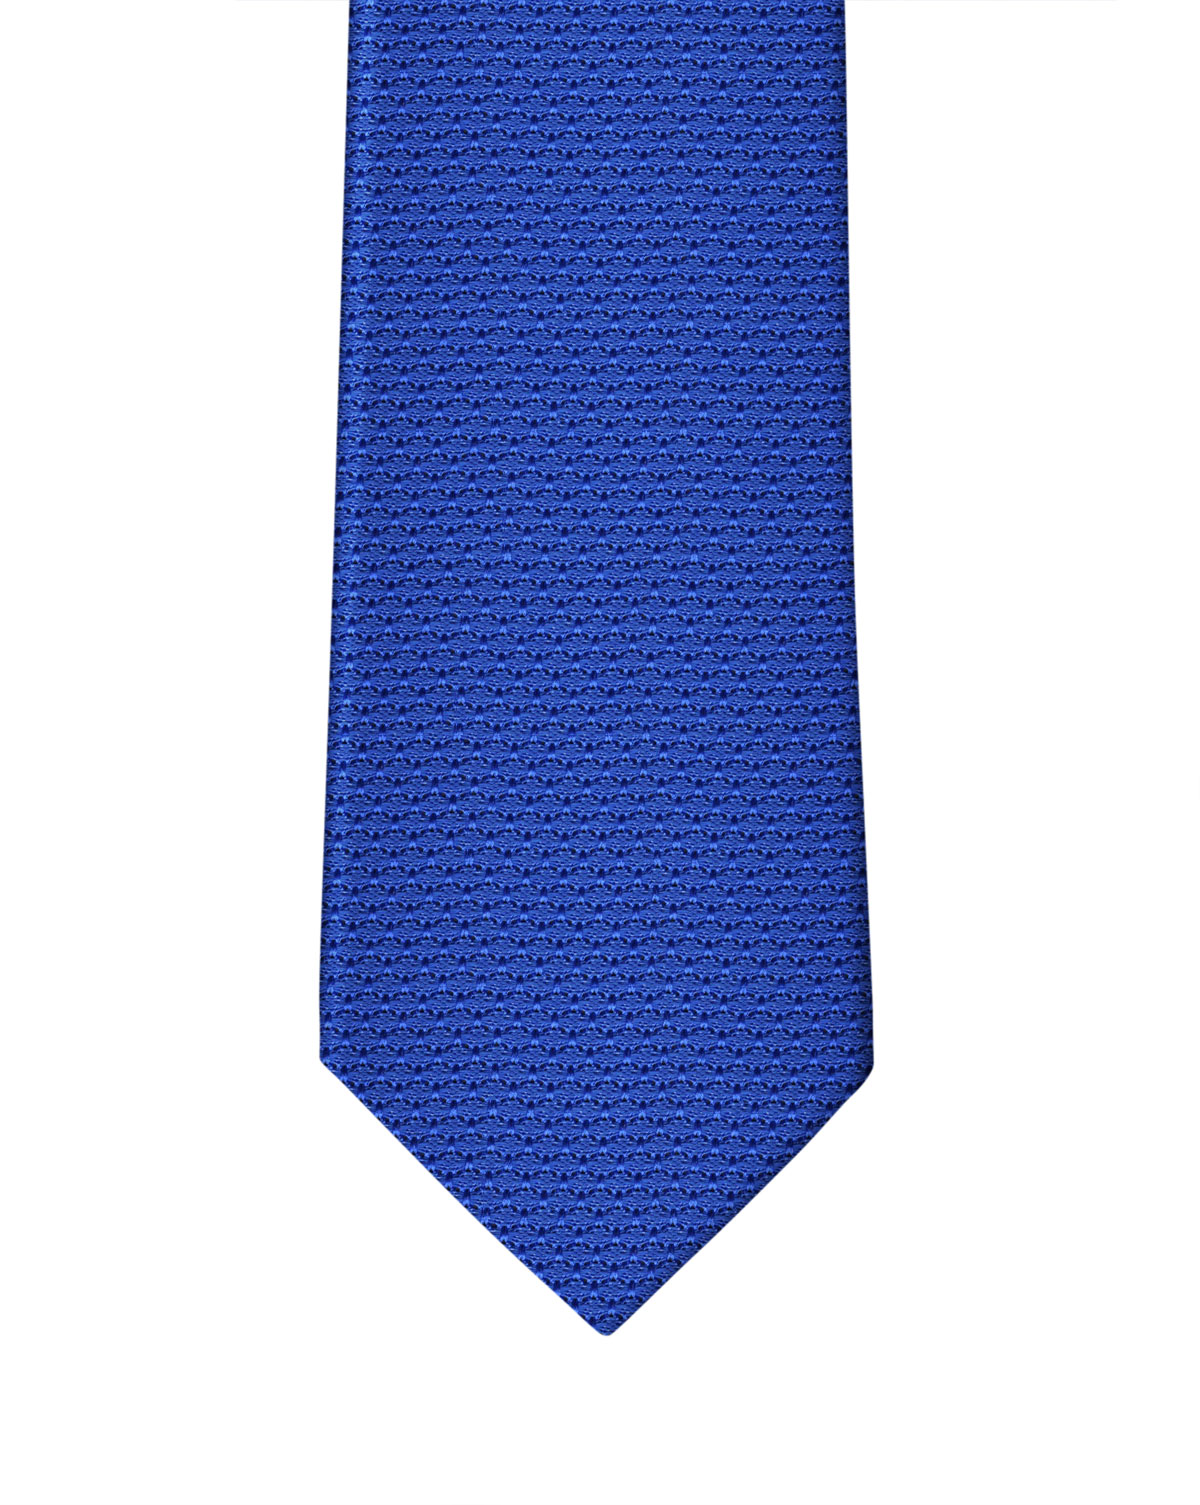 Bright Blue Grenadine Necktie